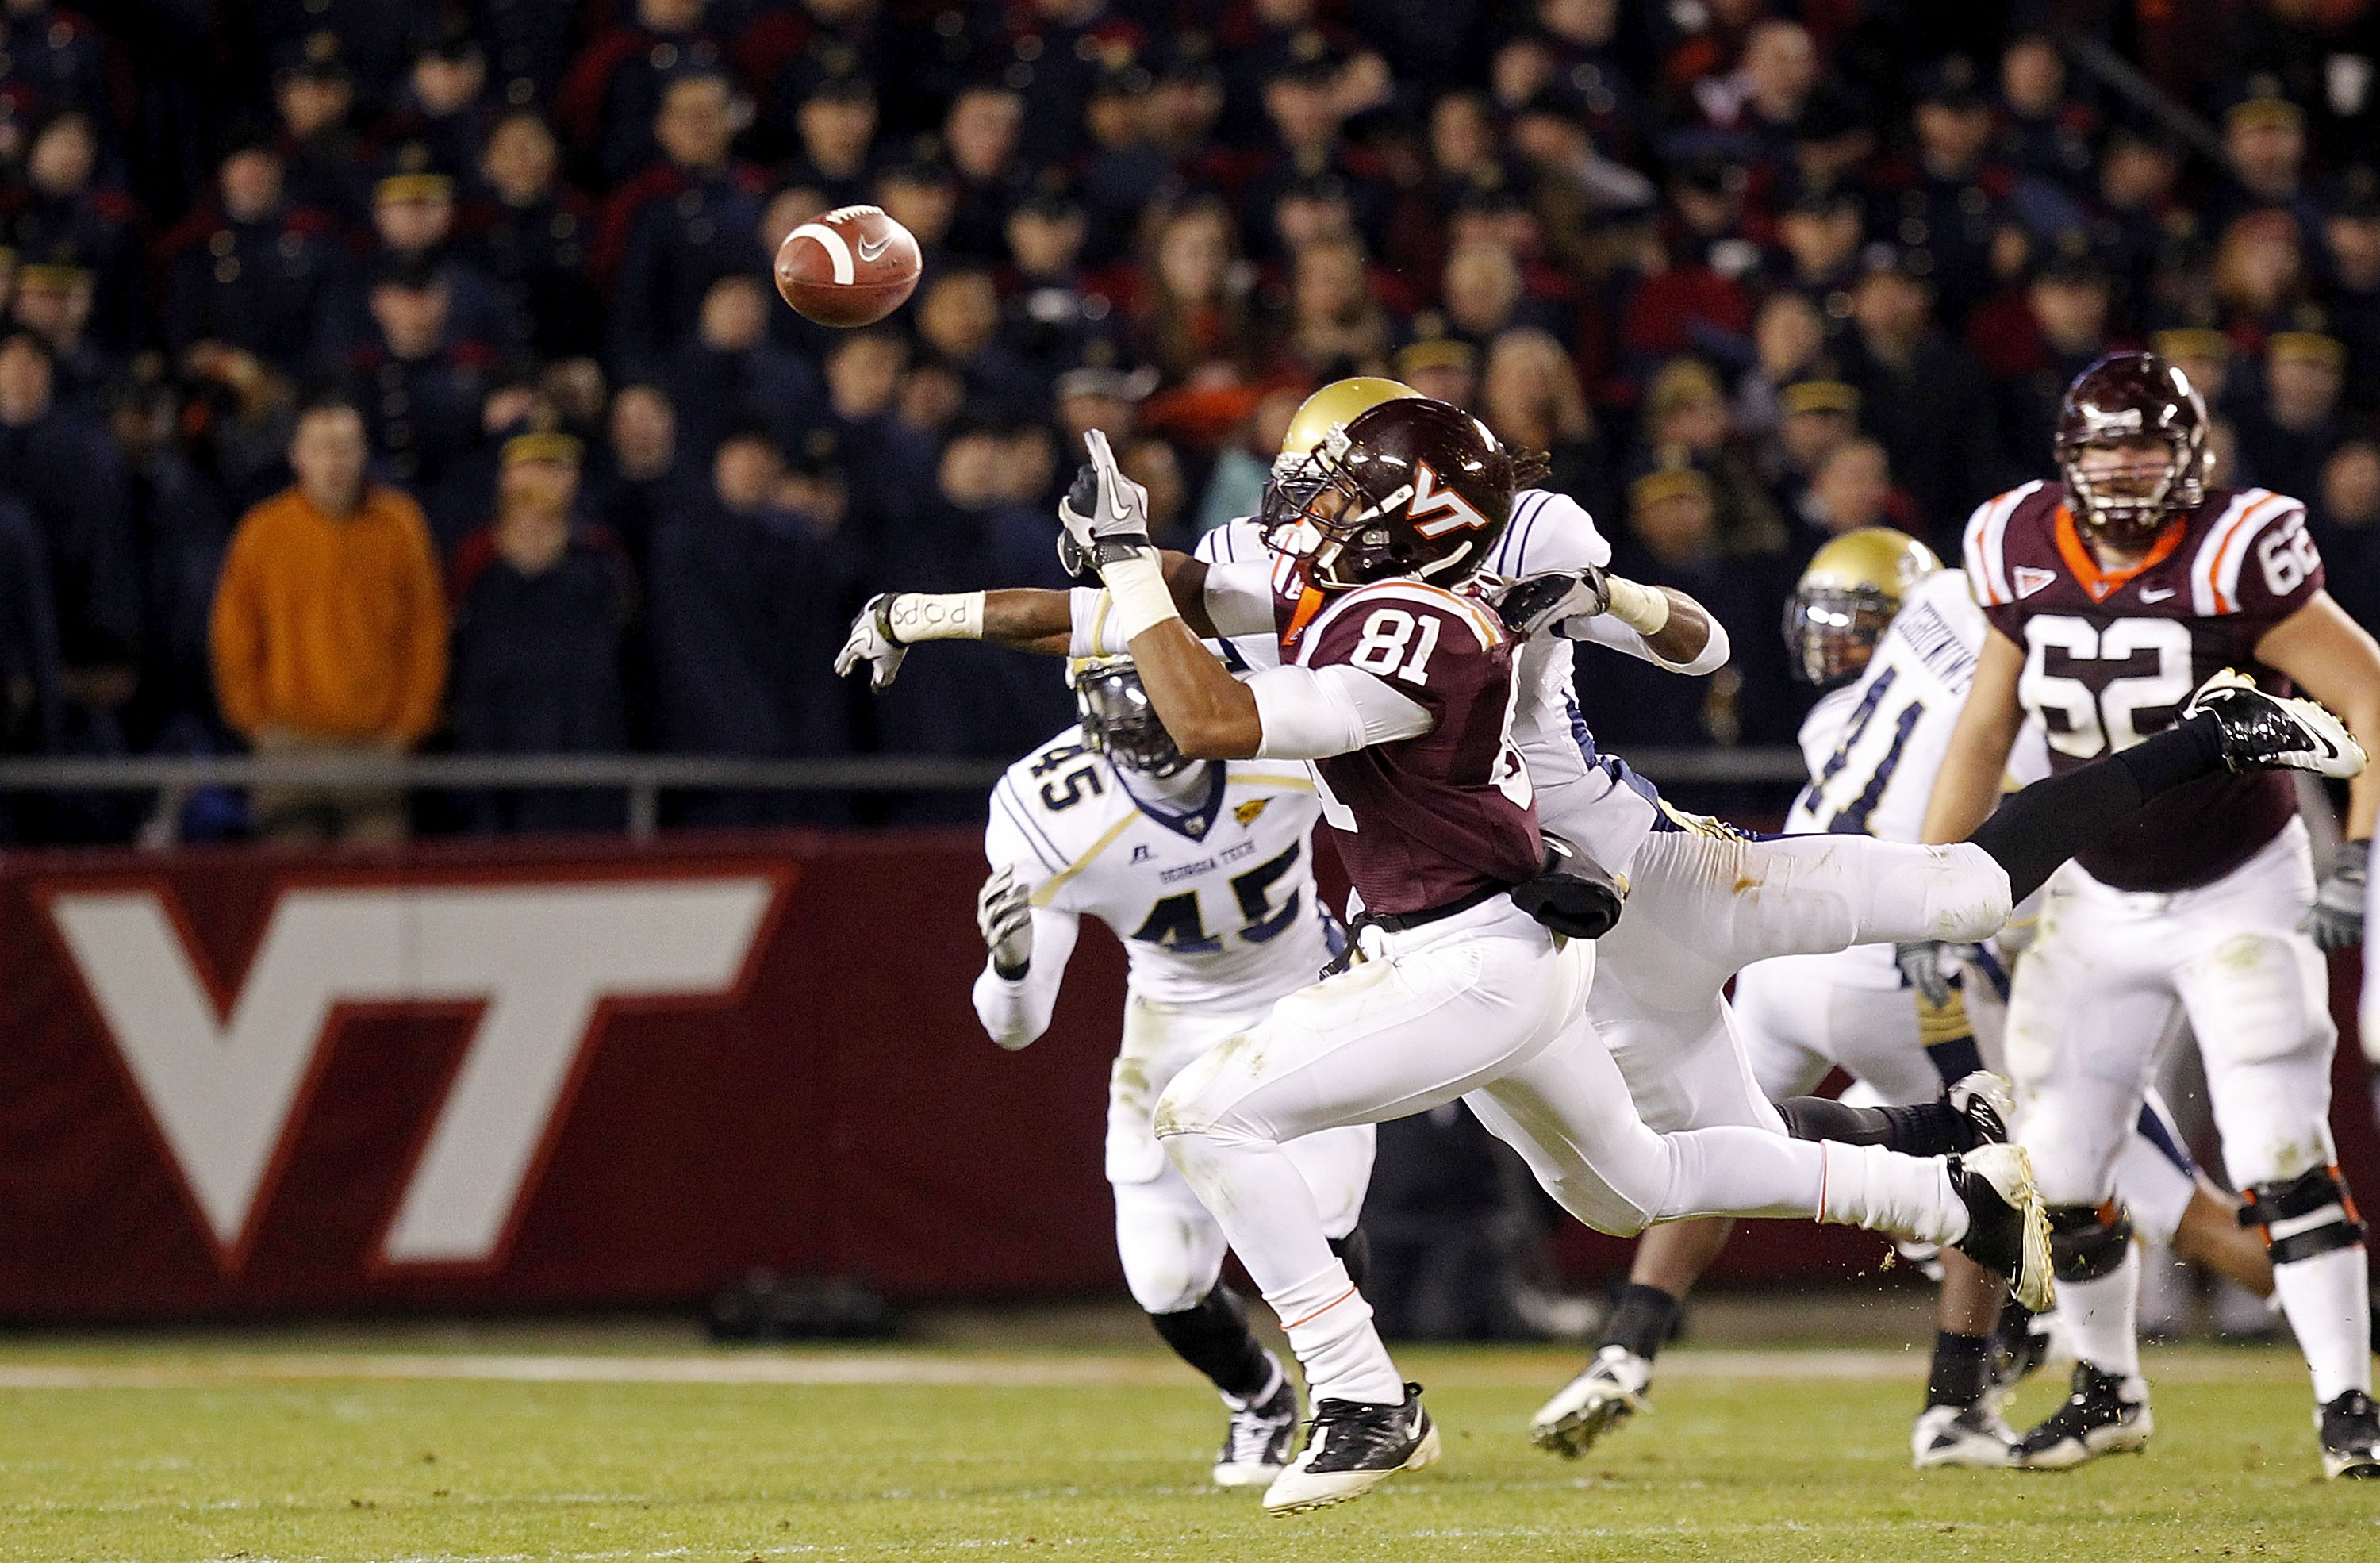 Butler Breaking Up a Pass Against Virginia Tech